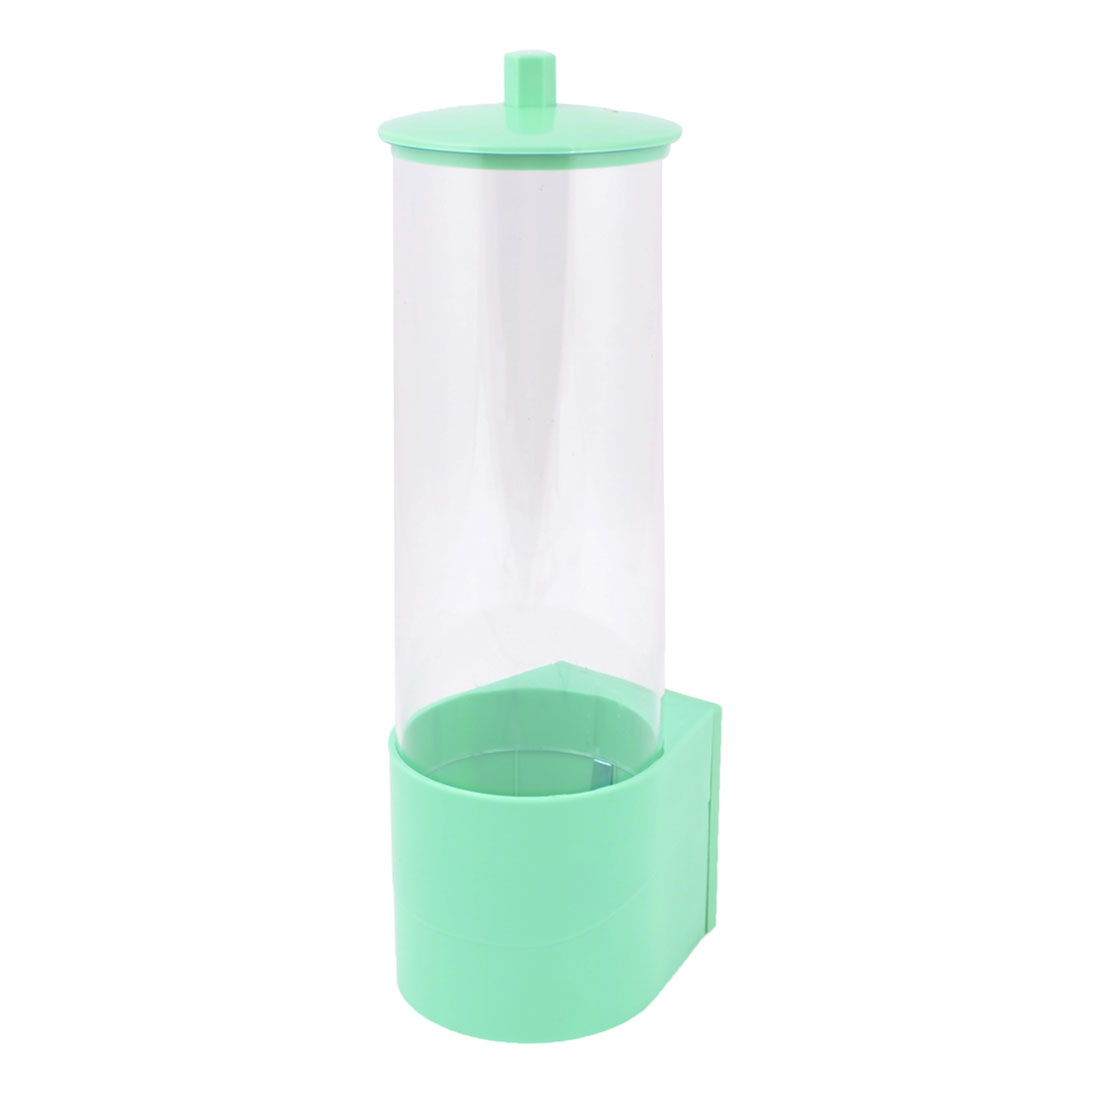 "10.2"" Height Household Kitchen Dustproof Plastic Cups Dispenser Tube Clear White Green"